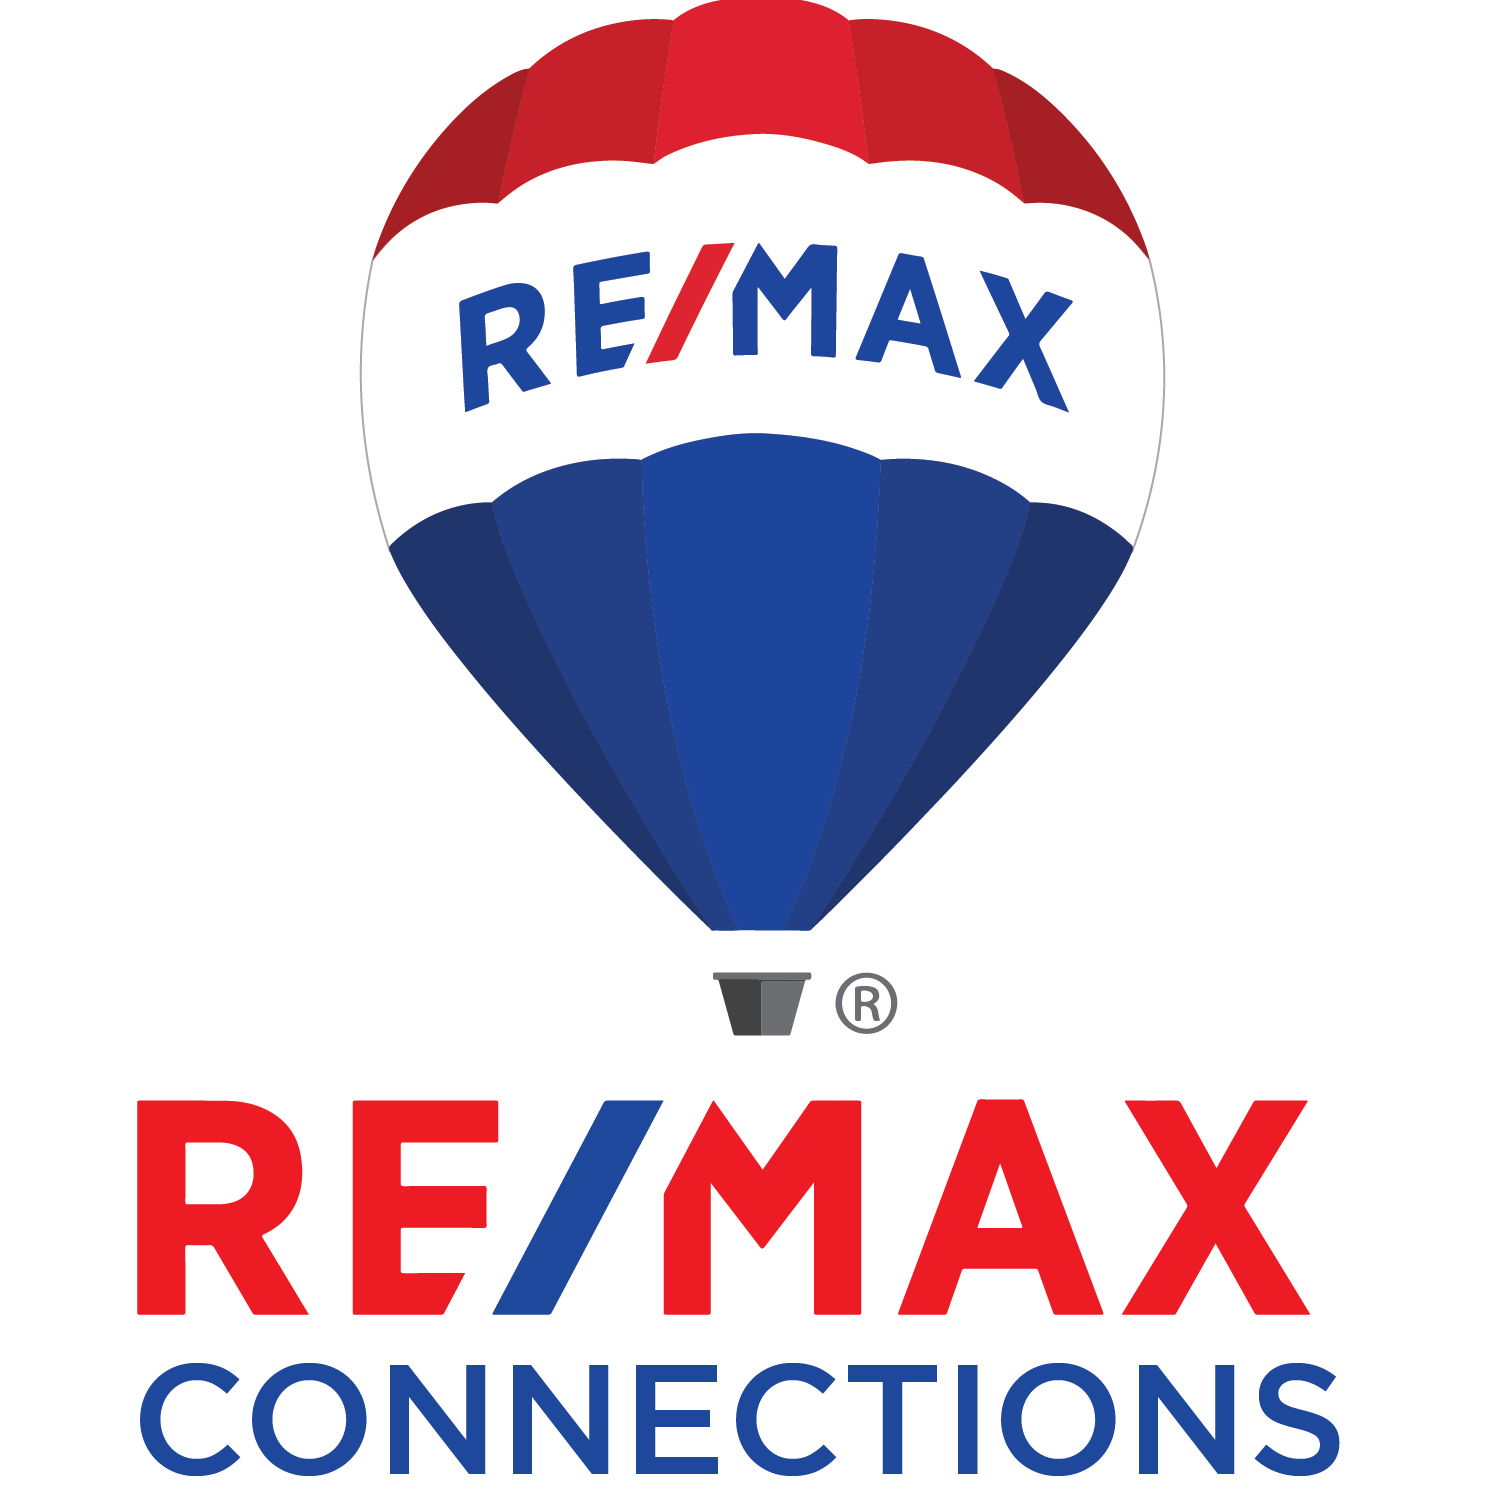 RE-MAX Connections